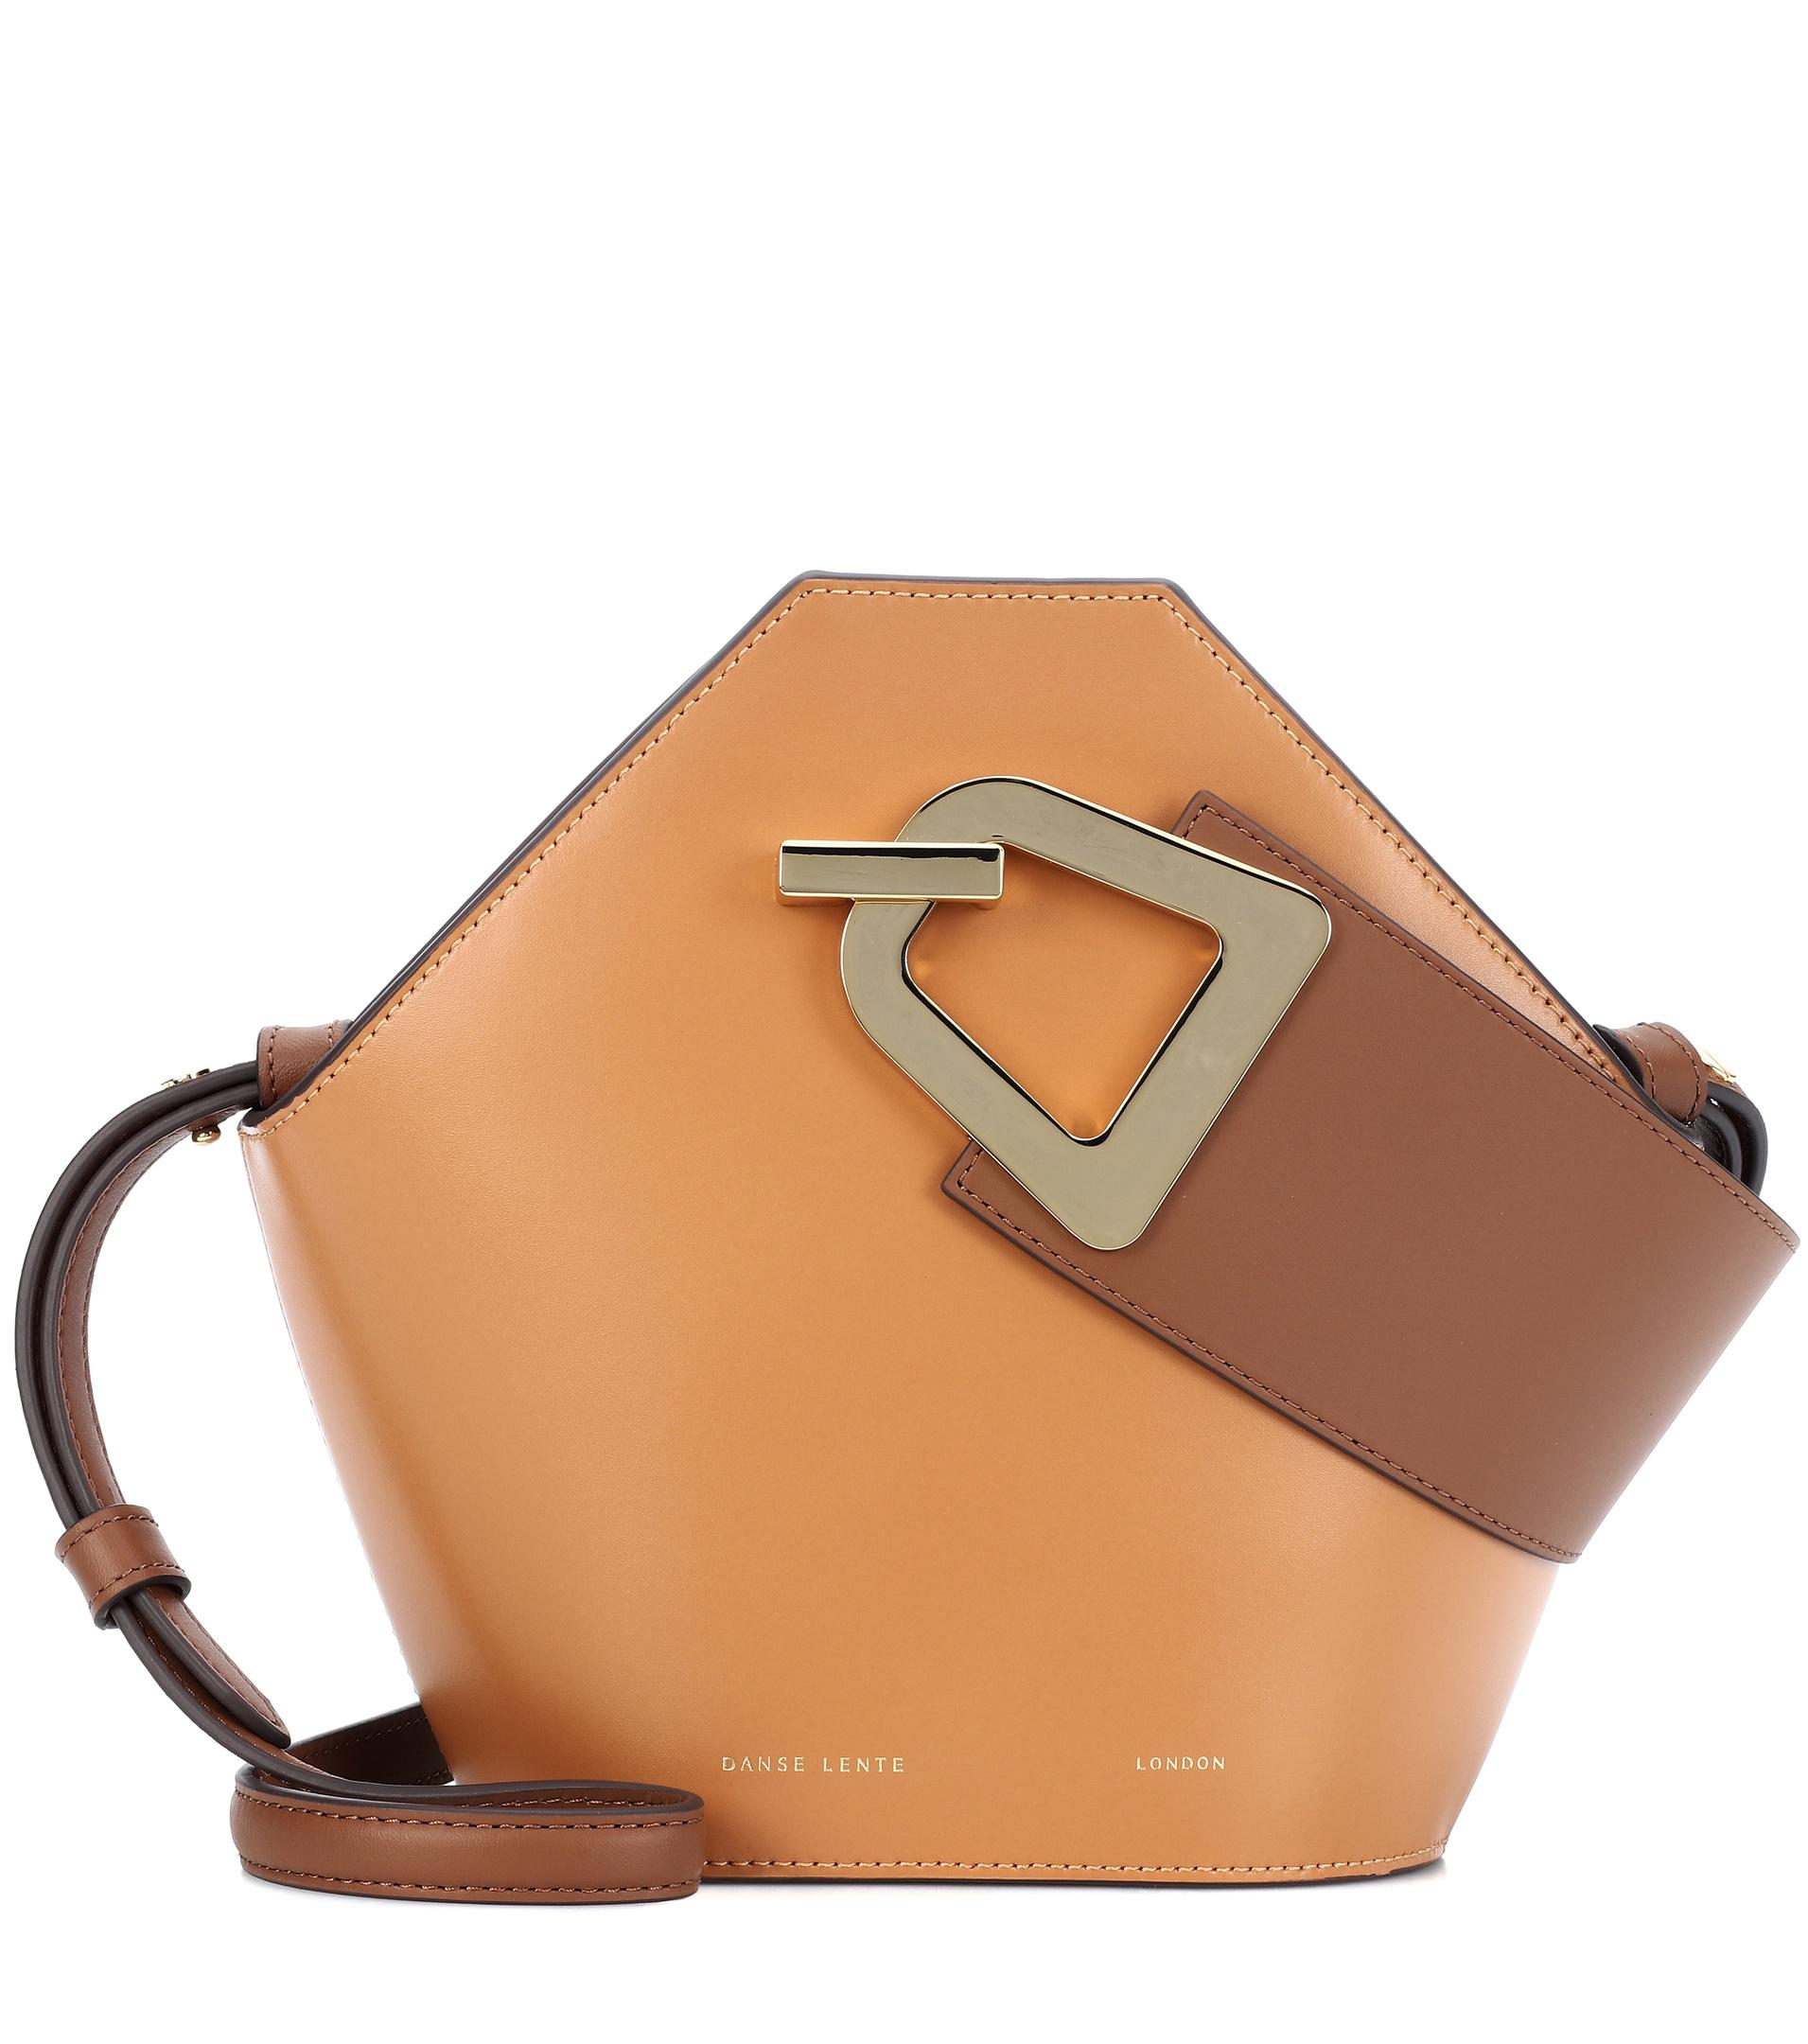 a68a88ad34f21 Danse Lente - Brown Mini Johnny Leather Bucket Bag - Lyst. View fullscreen